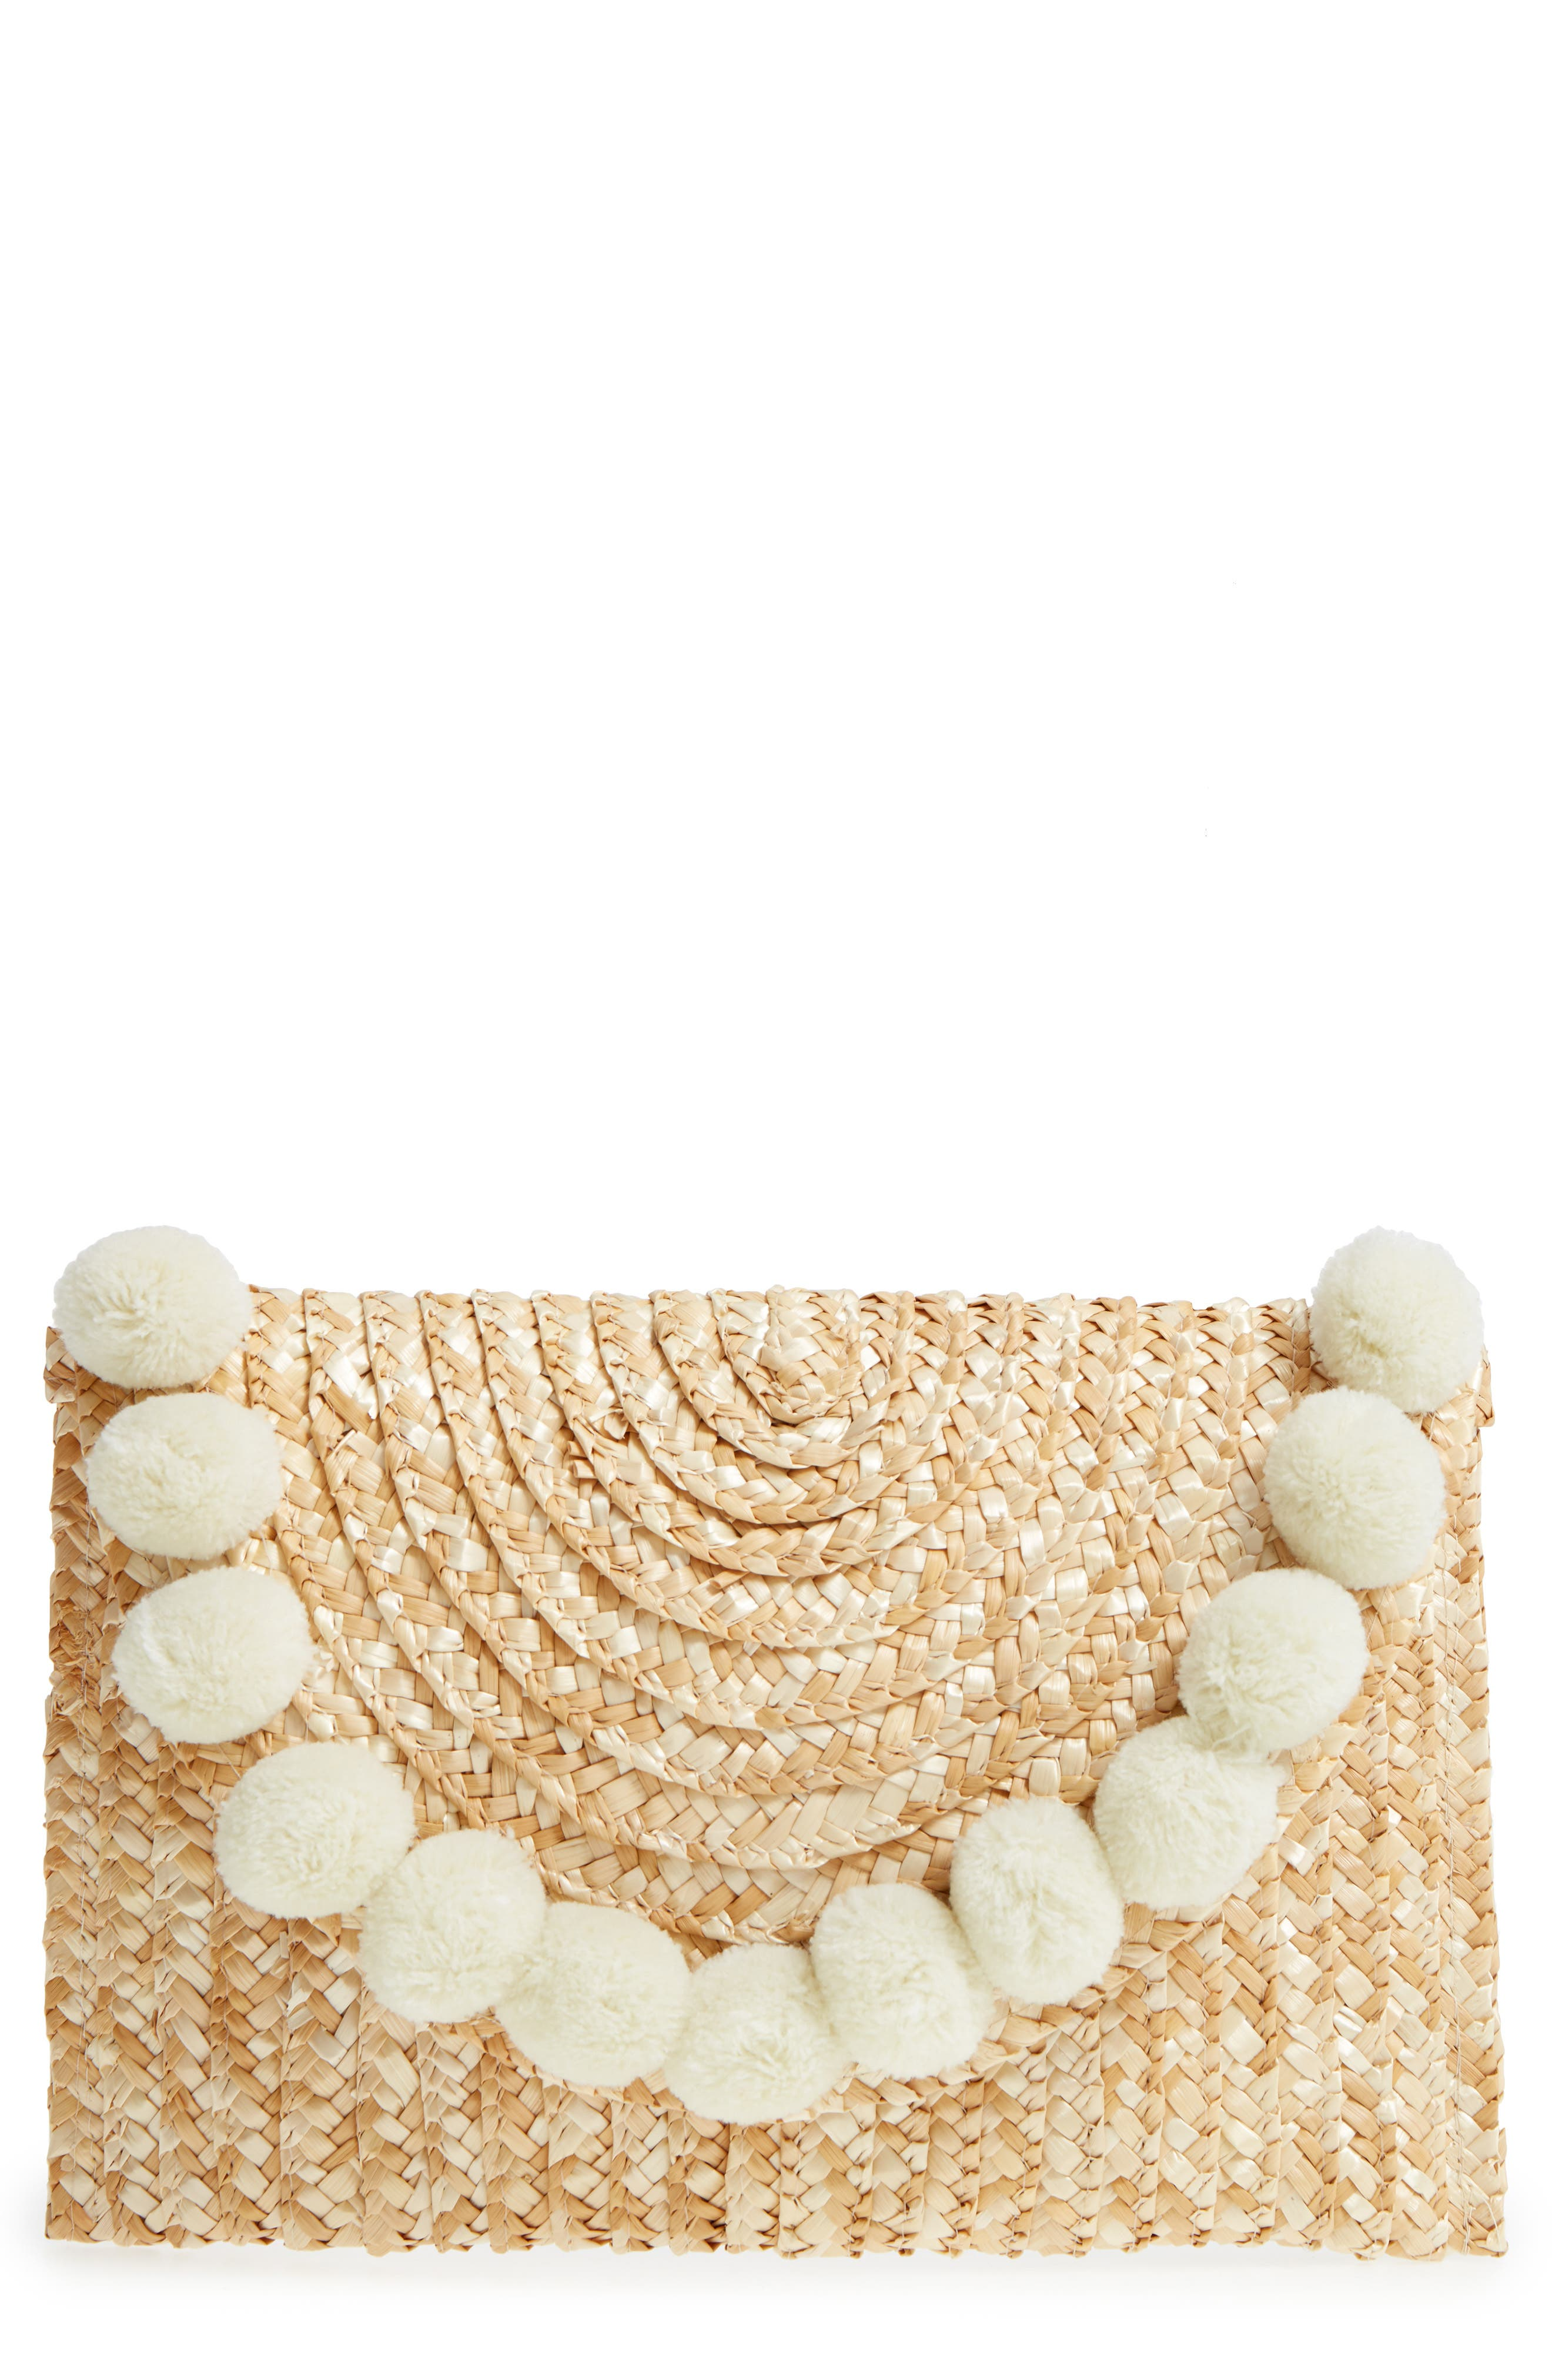 Fortuna Straw Clutch,                             Main thumbnail 1, color,                             Natural